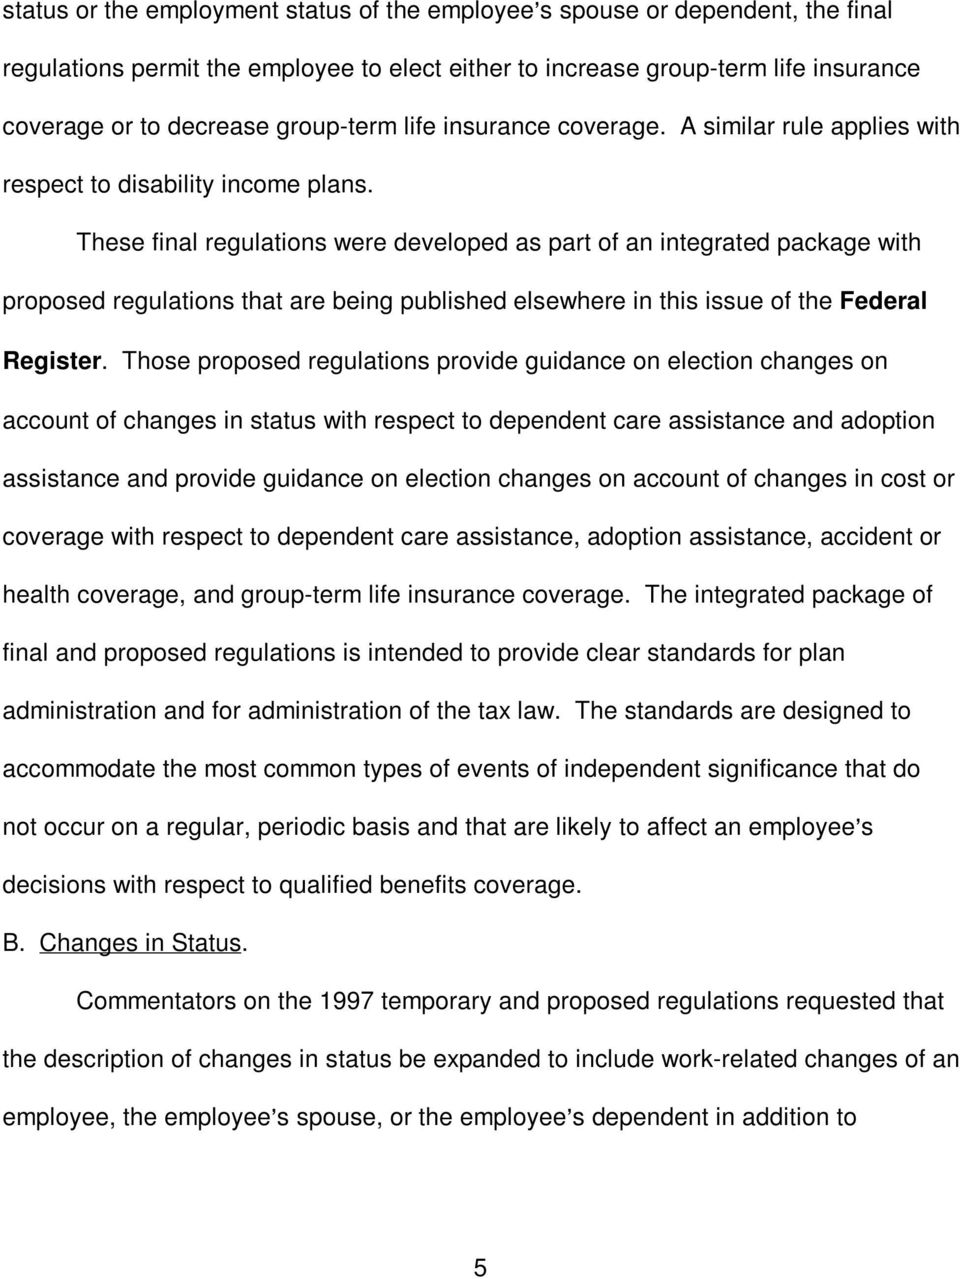 These final regulations were developed as part of an integrated package with proposed regulations that are being published elsewhere in this issue of the Federal Register.